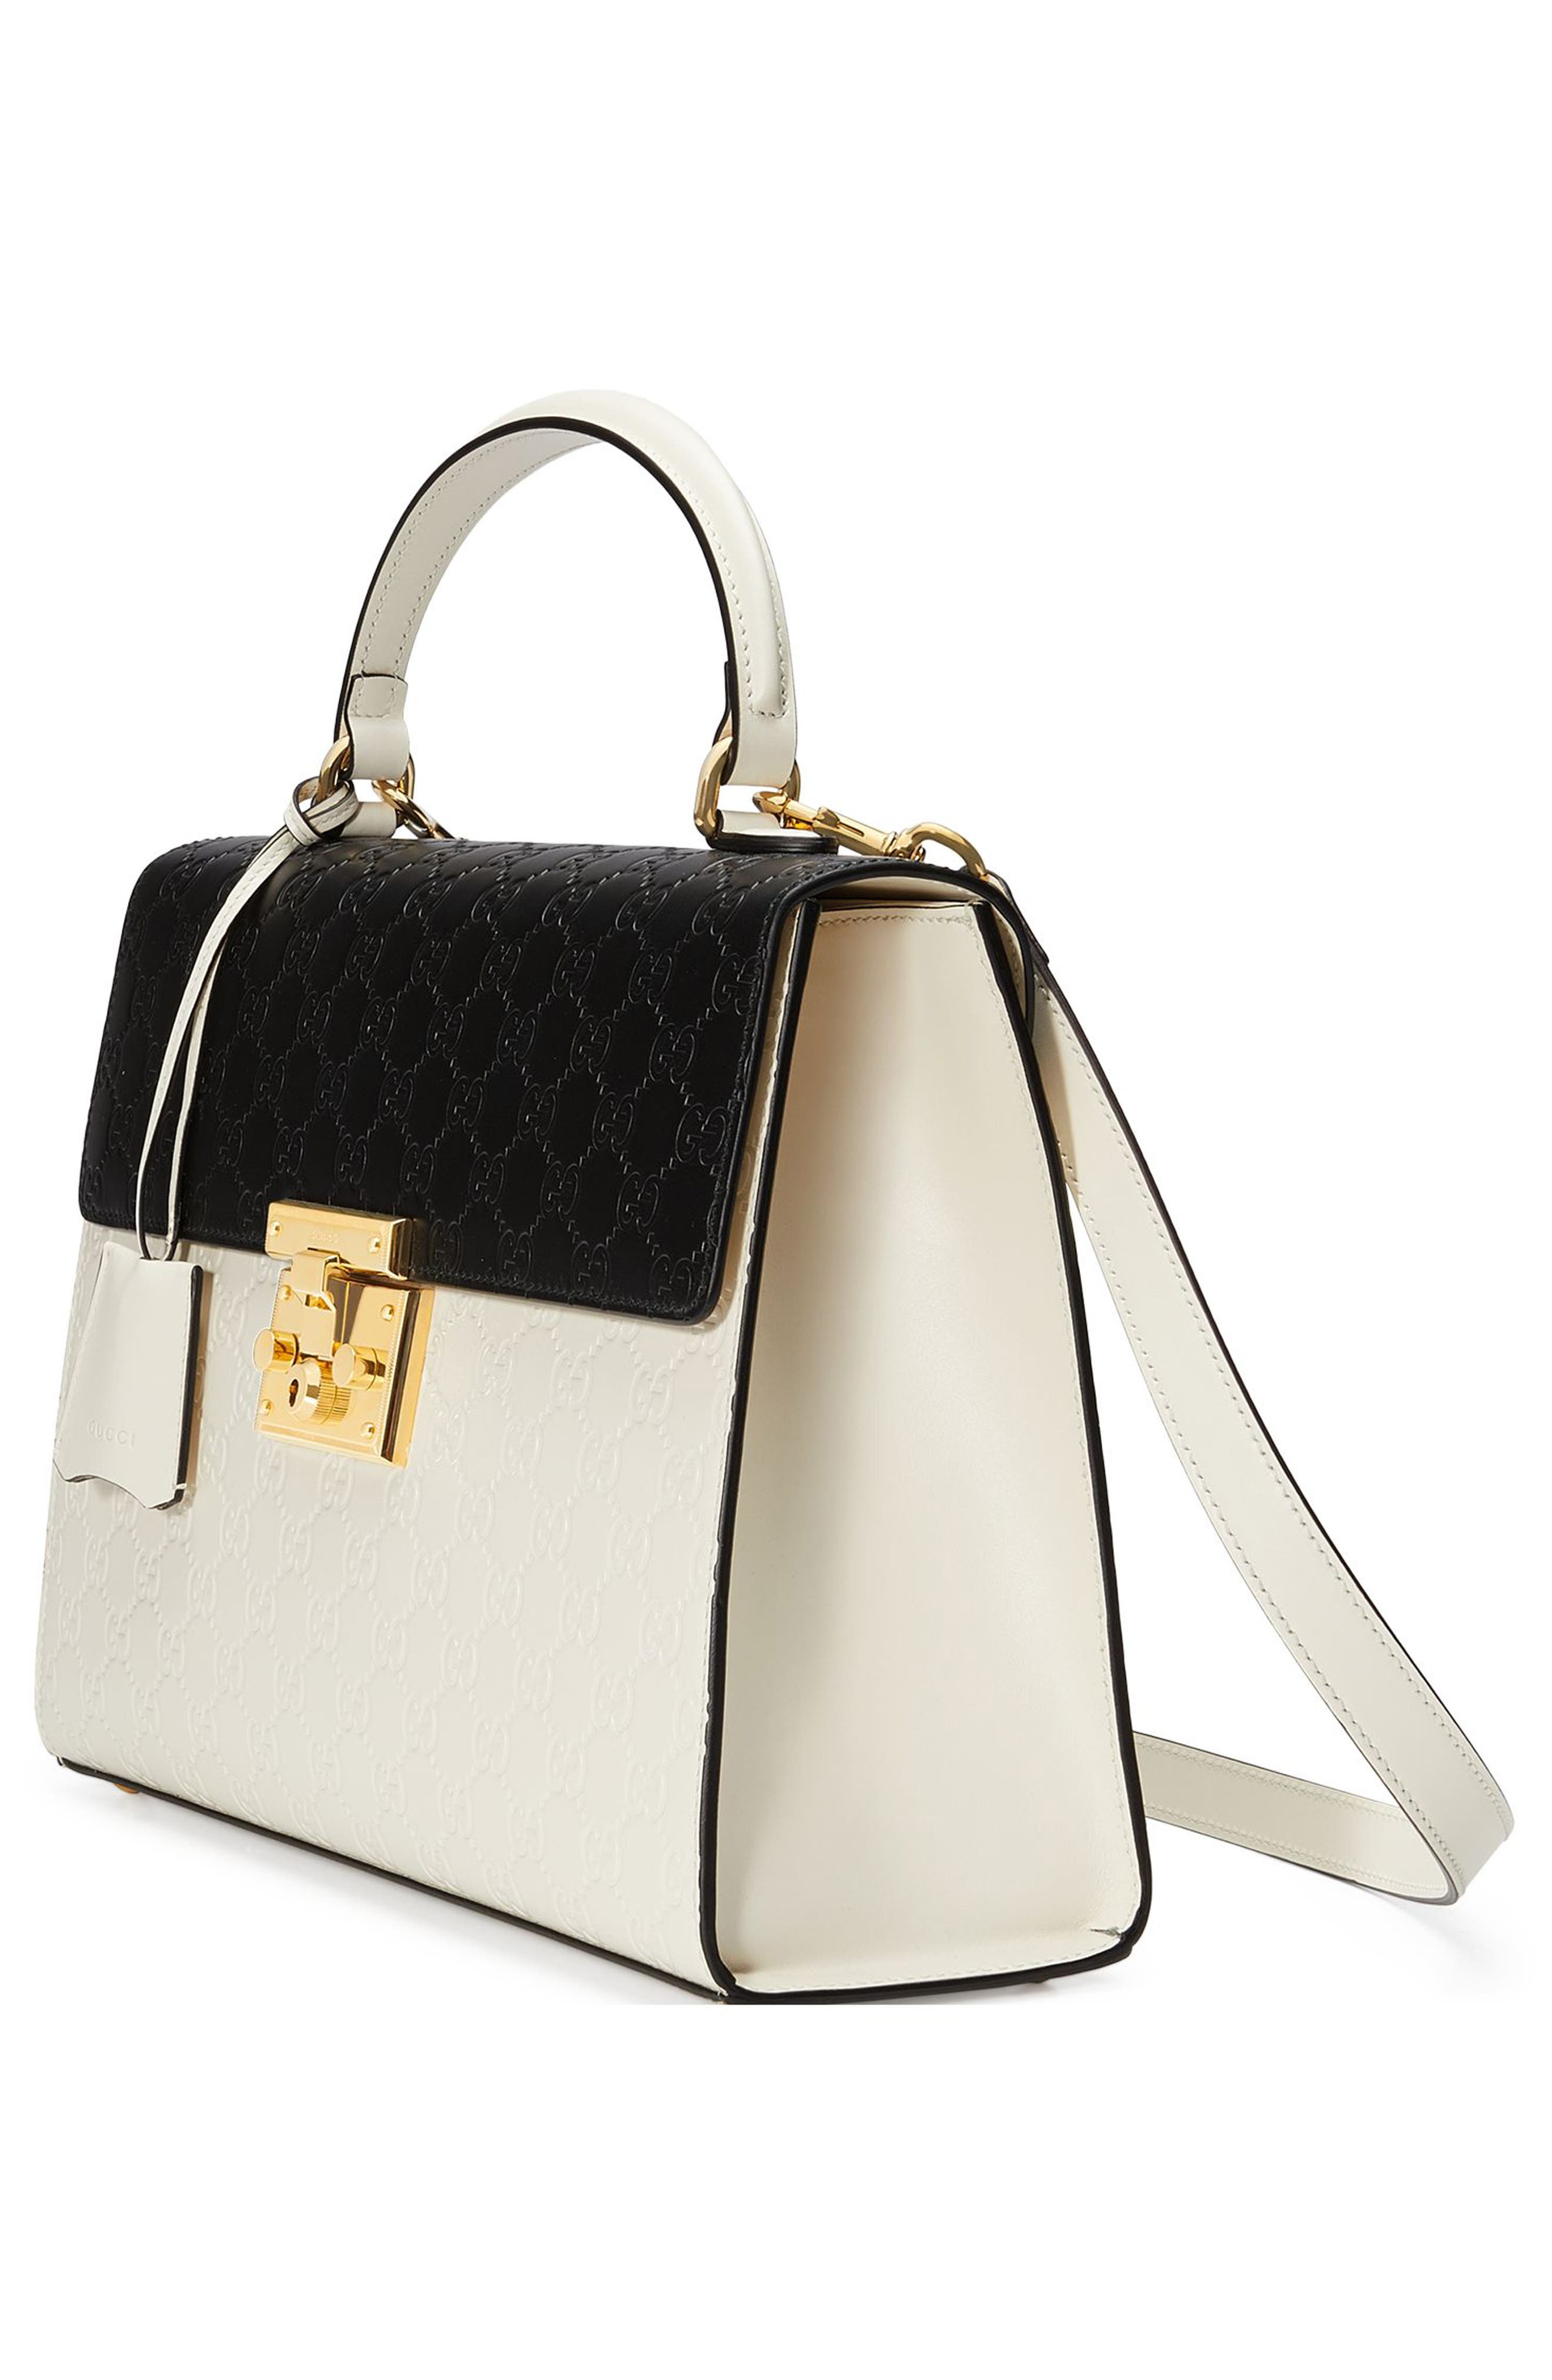 Medium Padlock Top Handles Signature Leather Satchel,                             Alternate thumbnail 4, color,                             MYSTIC WHITE/NERO